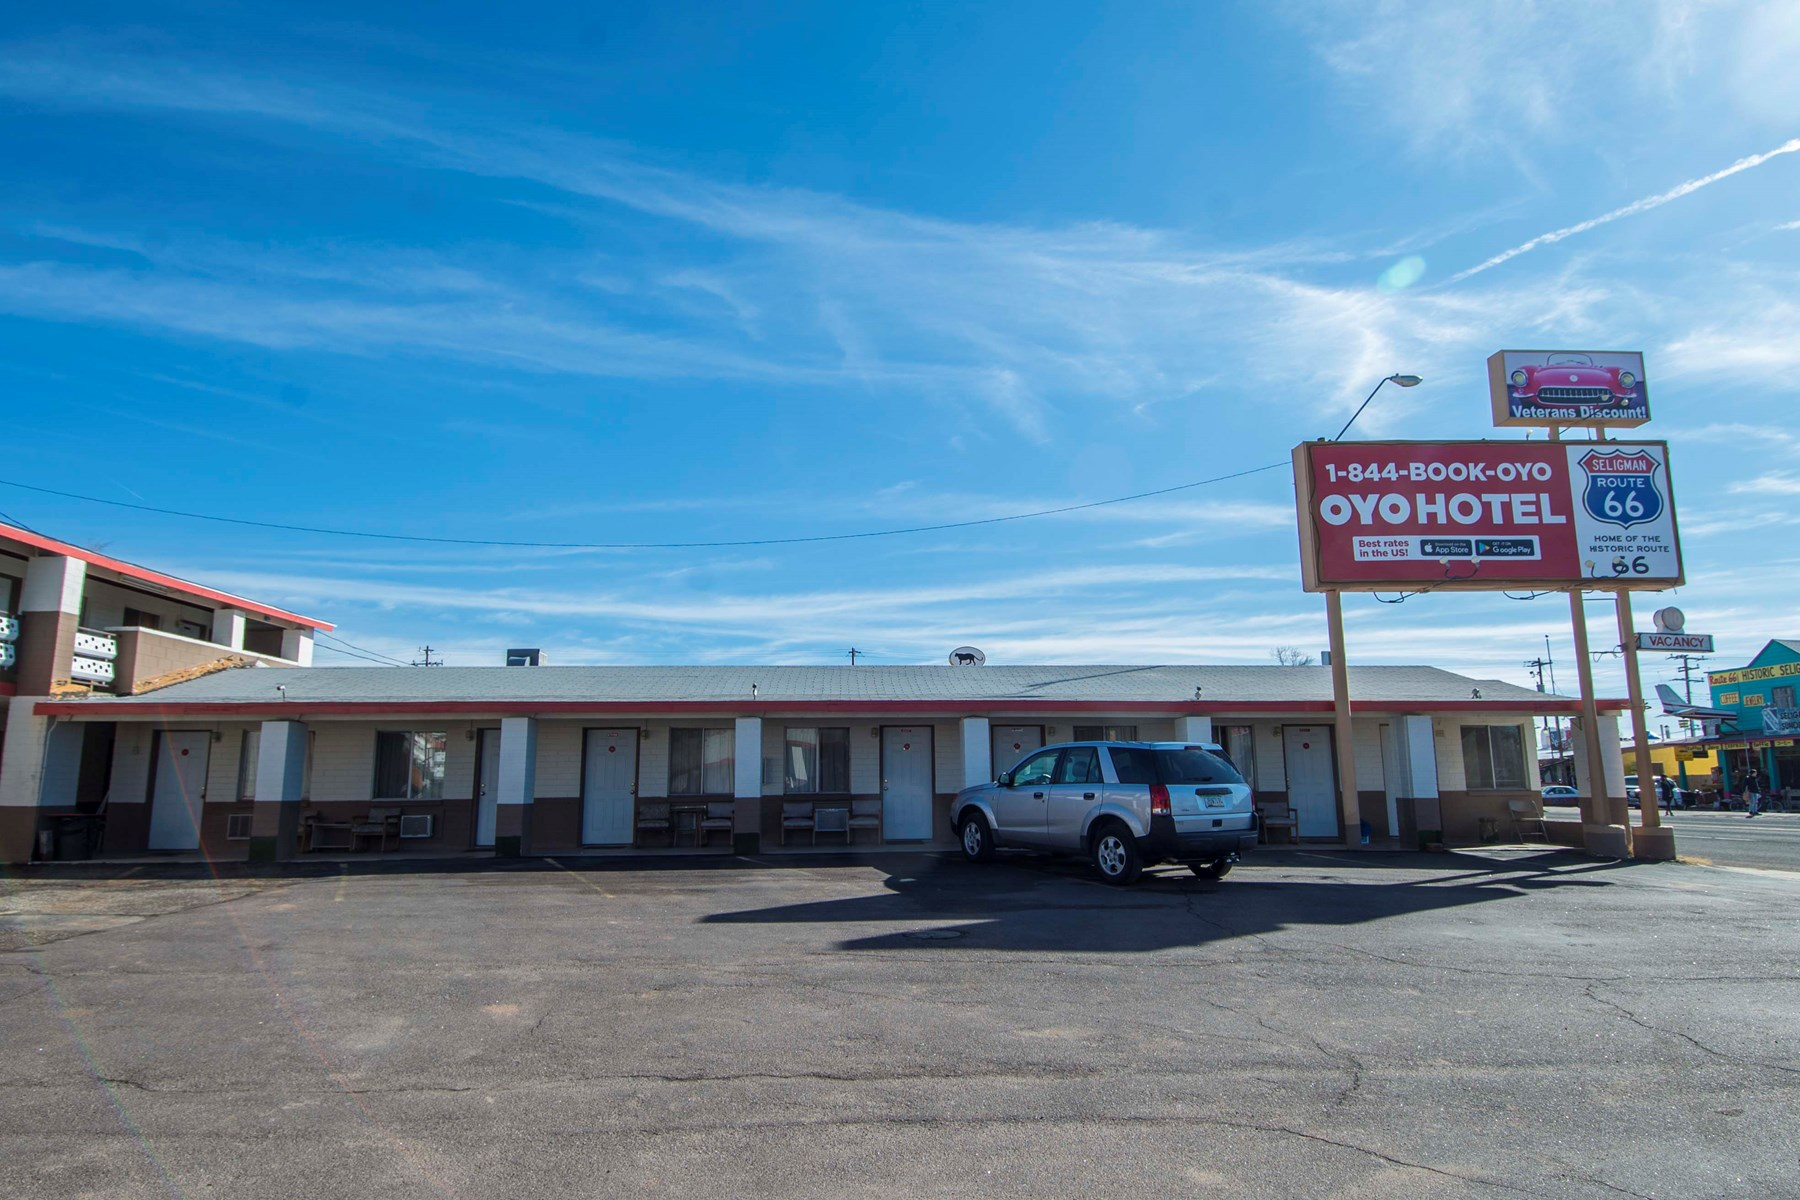 Historic Route 66 Hotel/Motel For Sale in Seligman, AZ